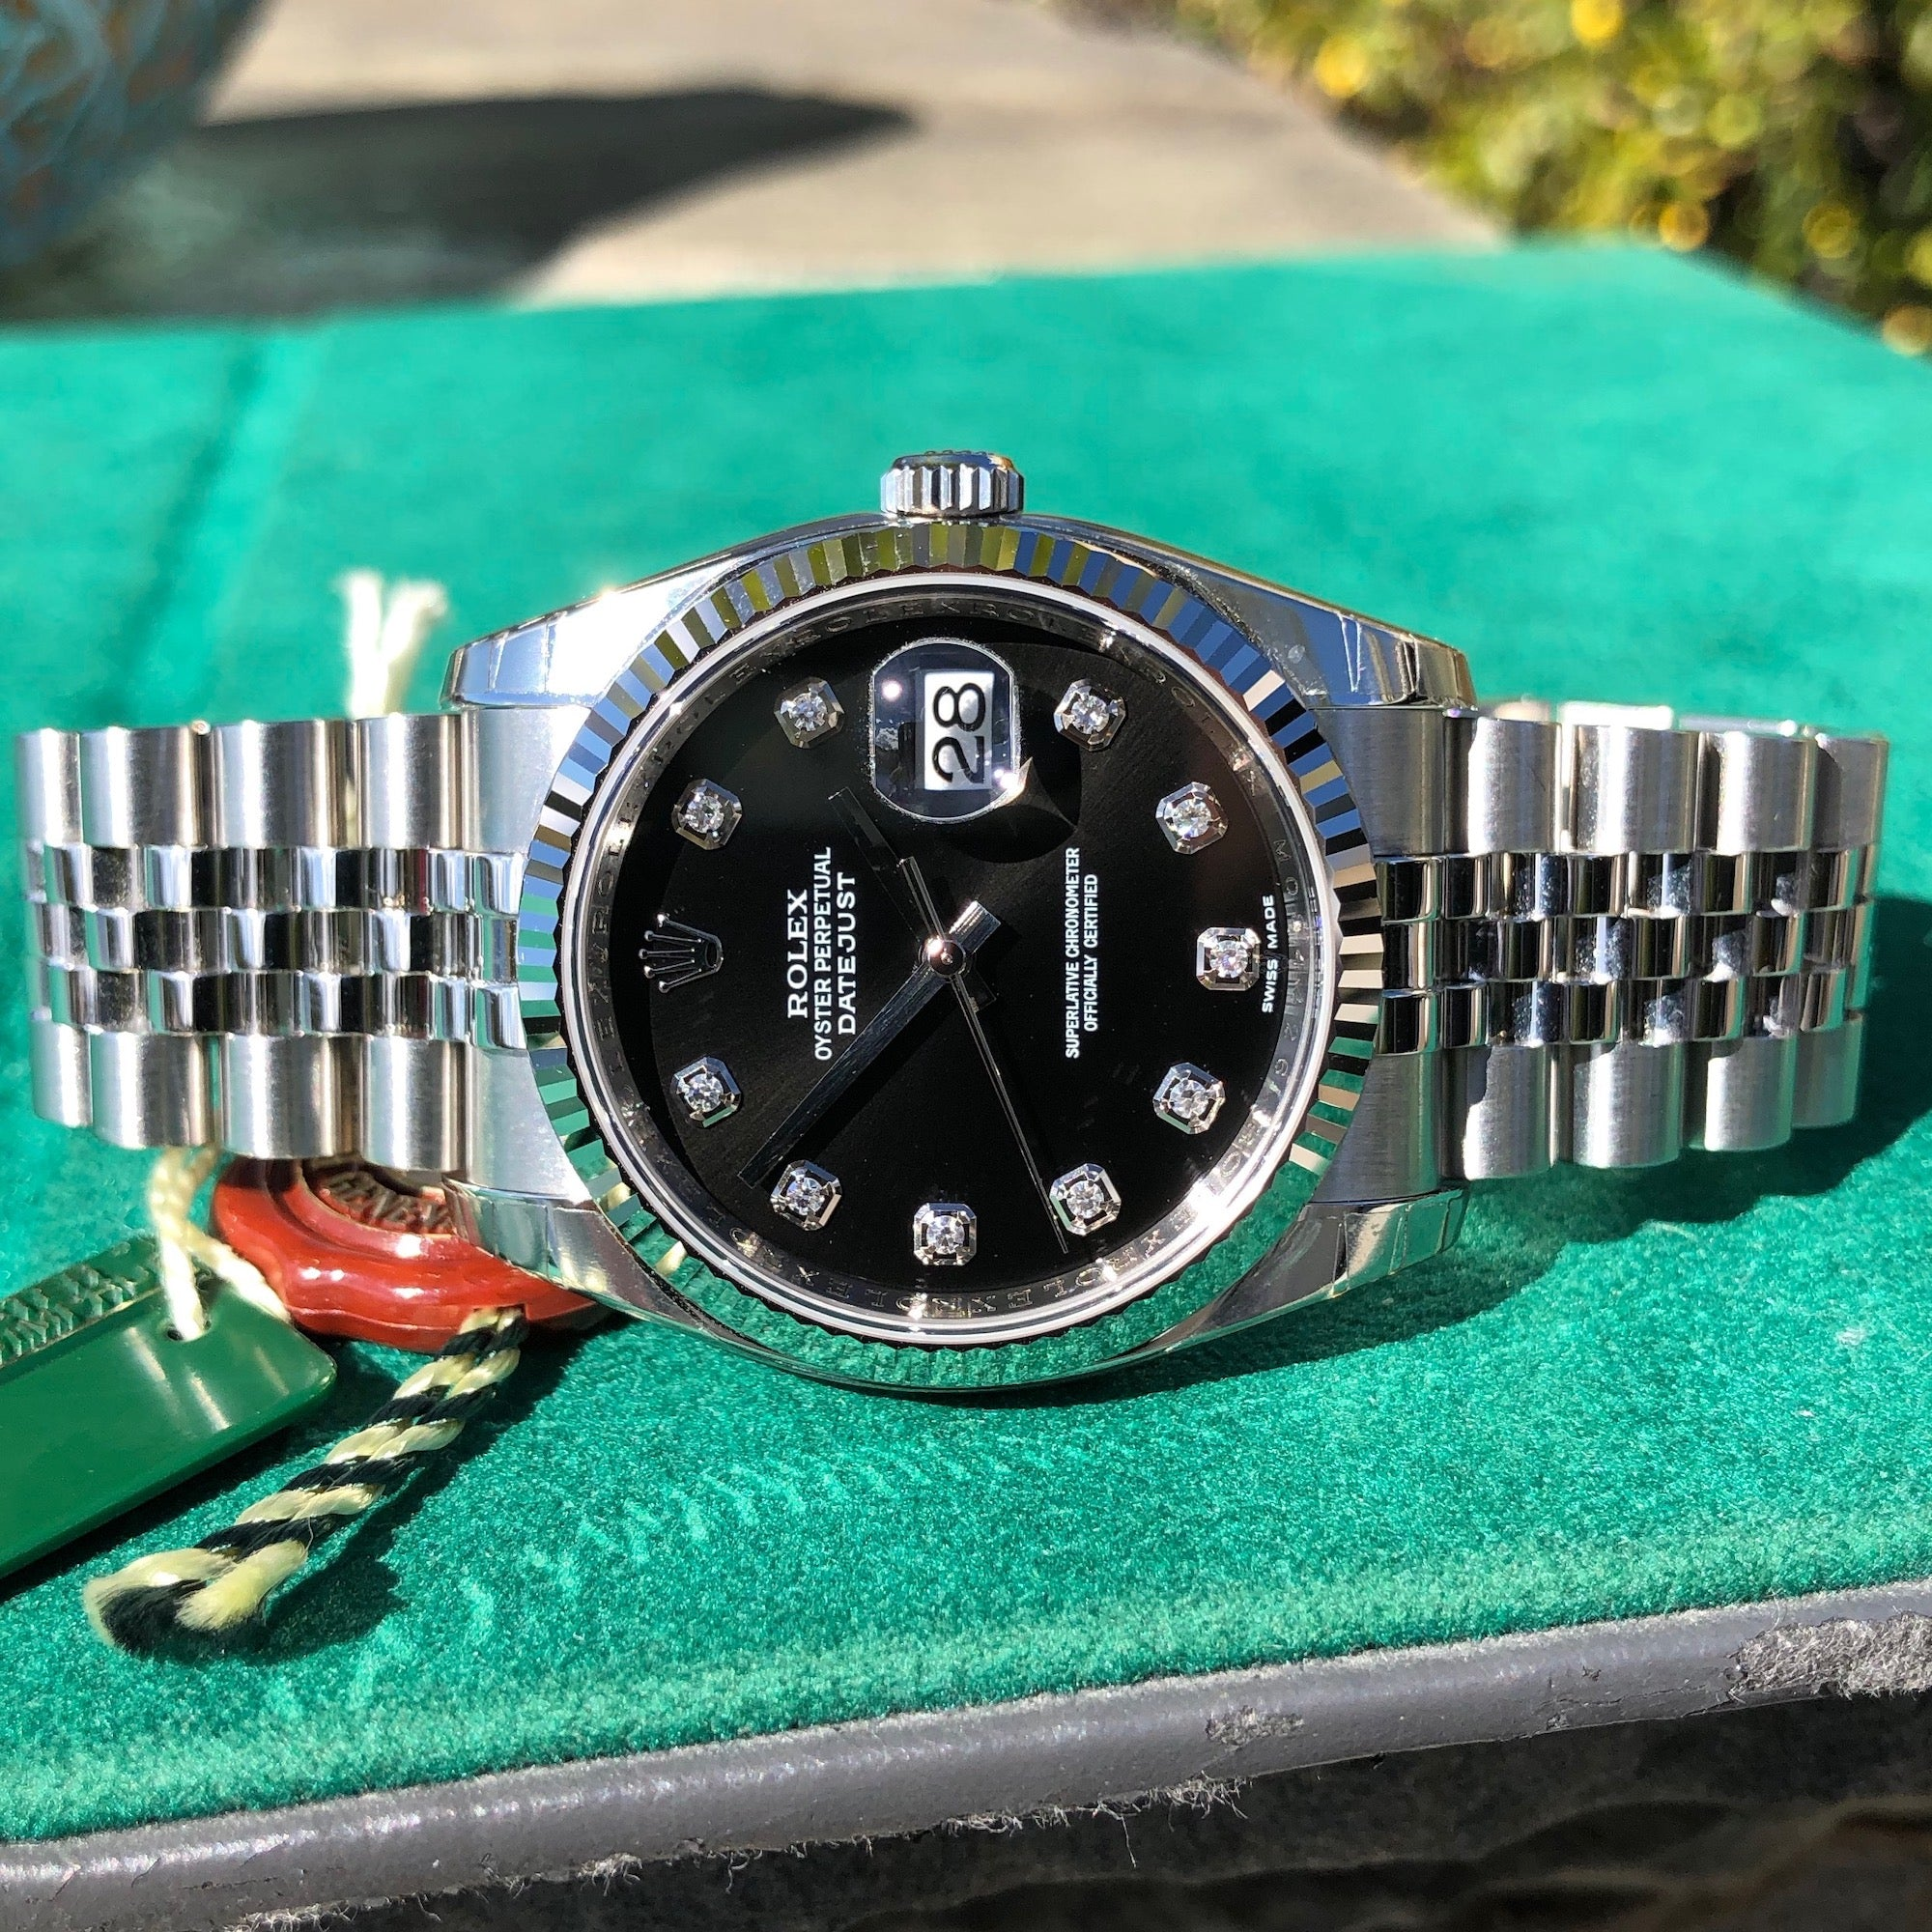 Rolex Datejust 116234 Black Diamond 36mm Jubilee Wristwatch Box & Papers New Unworn - Hashtag Watch Company